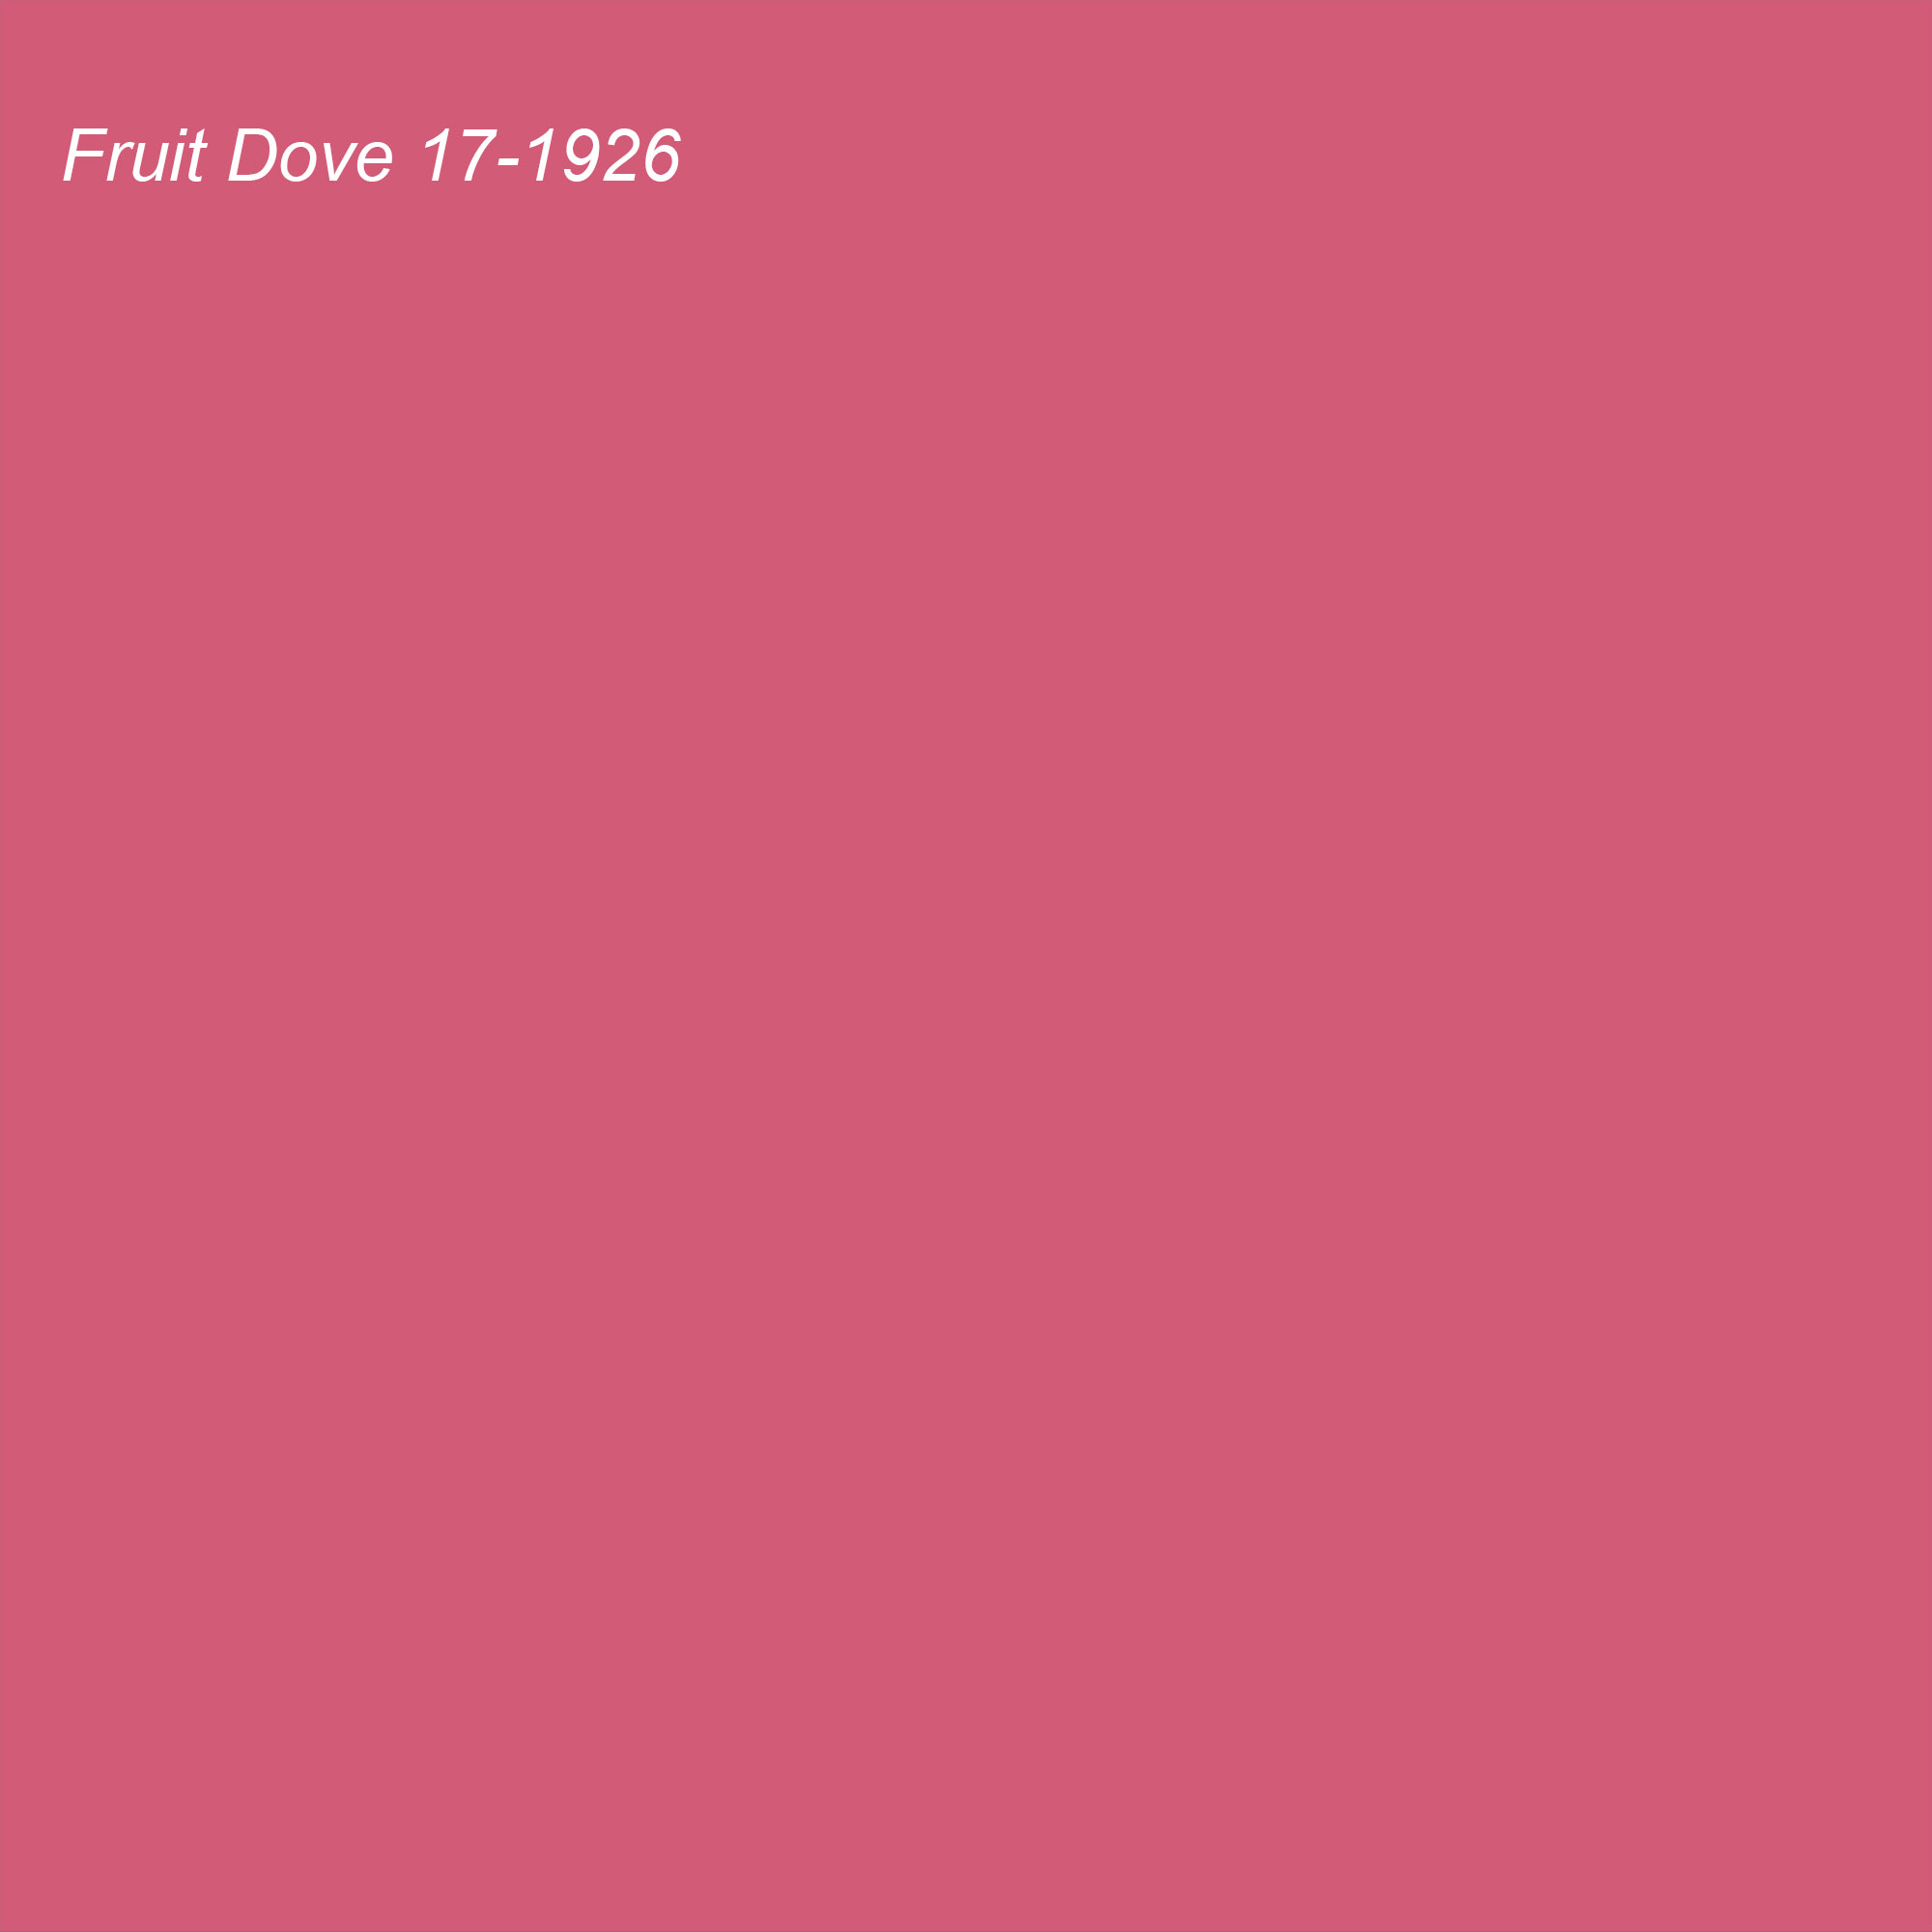 Pantone 2021 Color of the Year Suggested Accent Shade Fruit Dove 17-1926